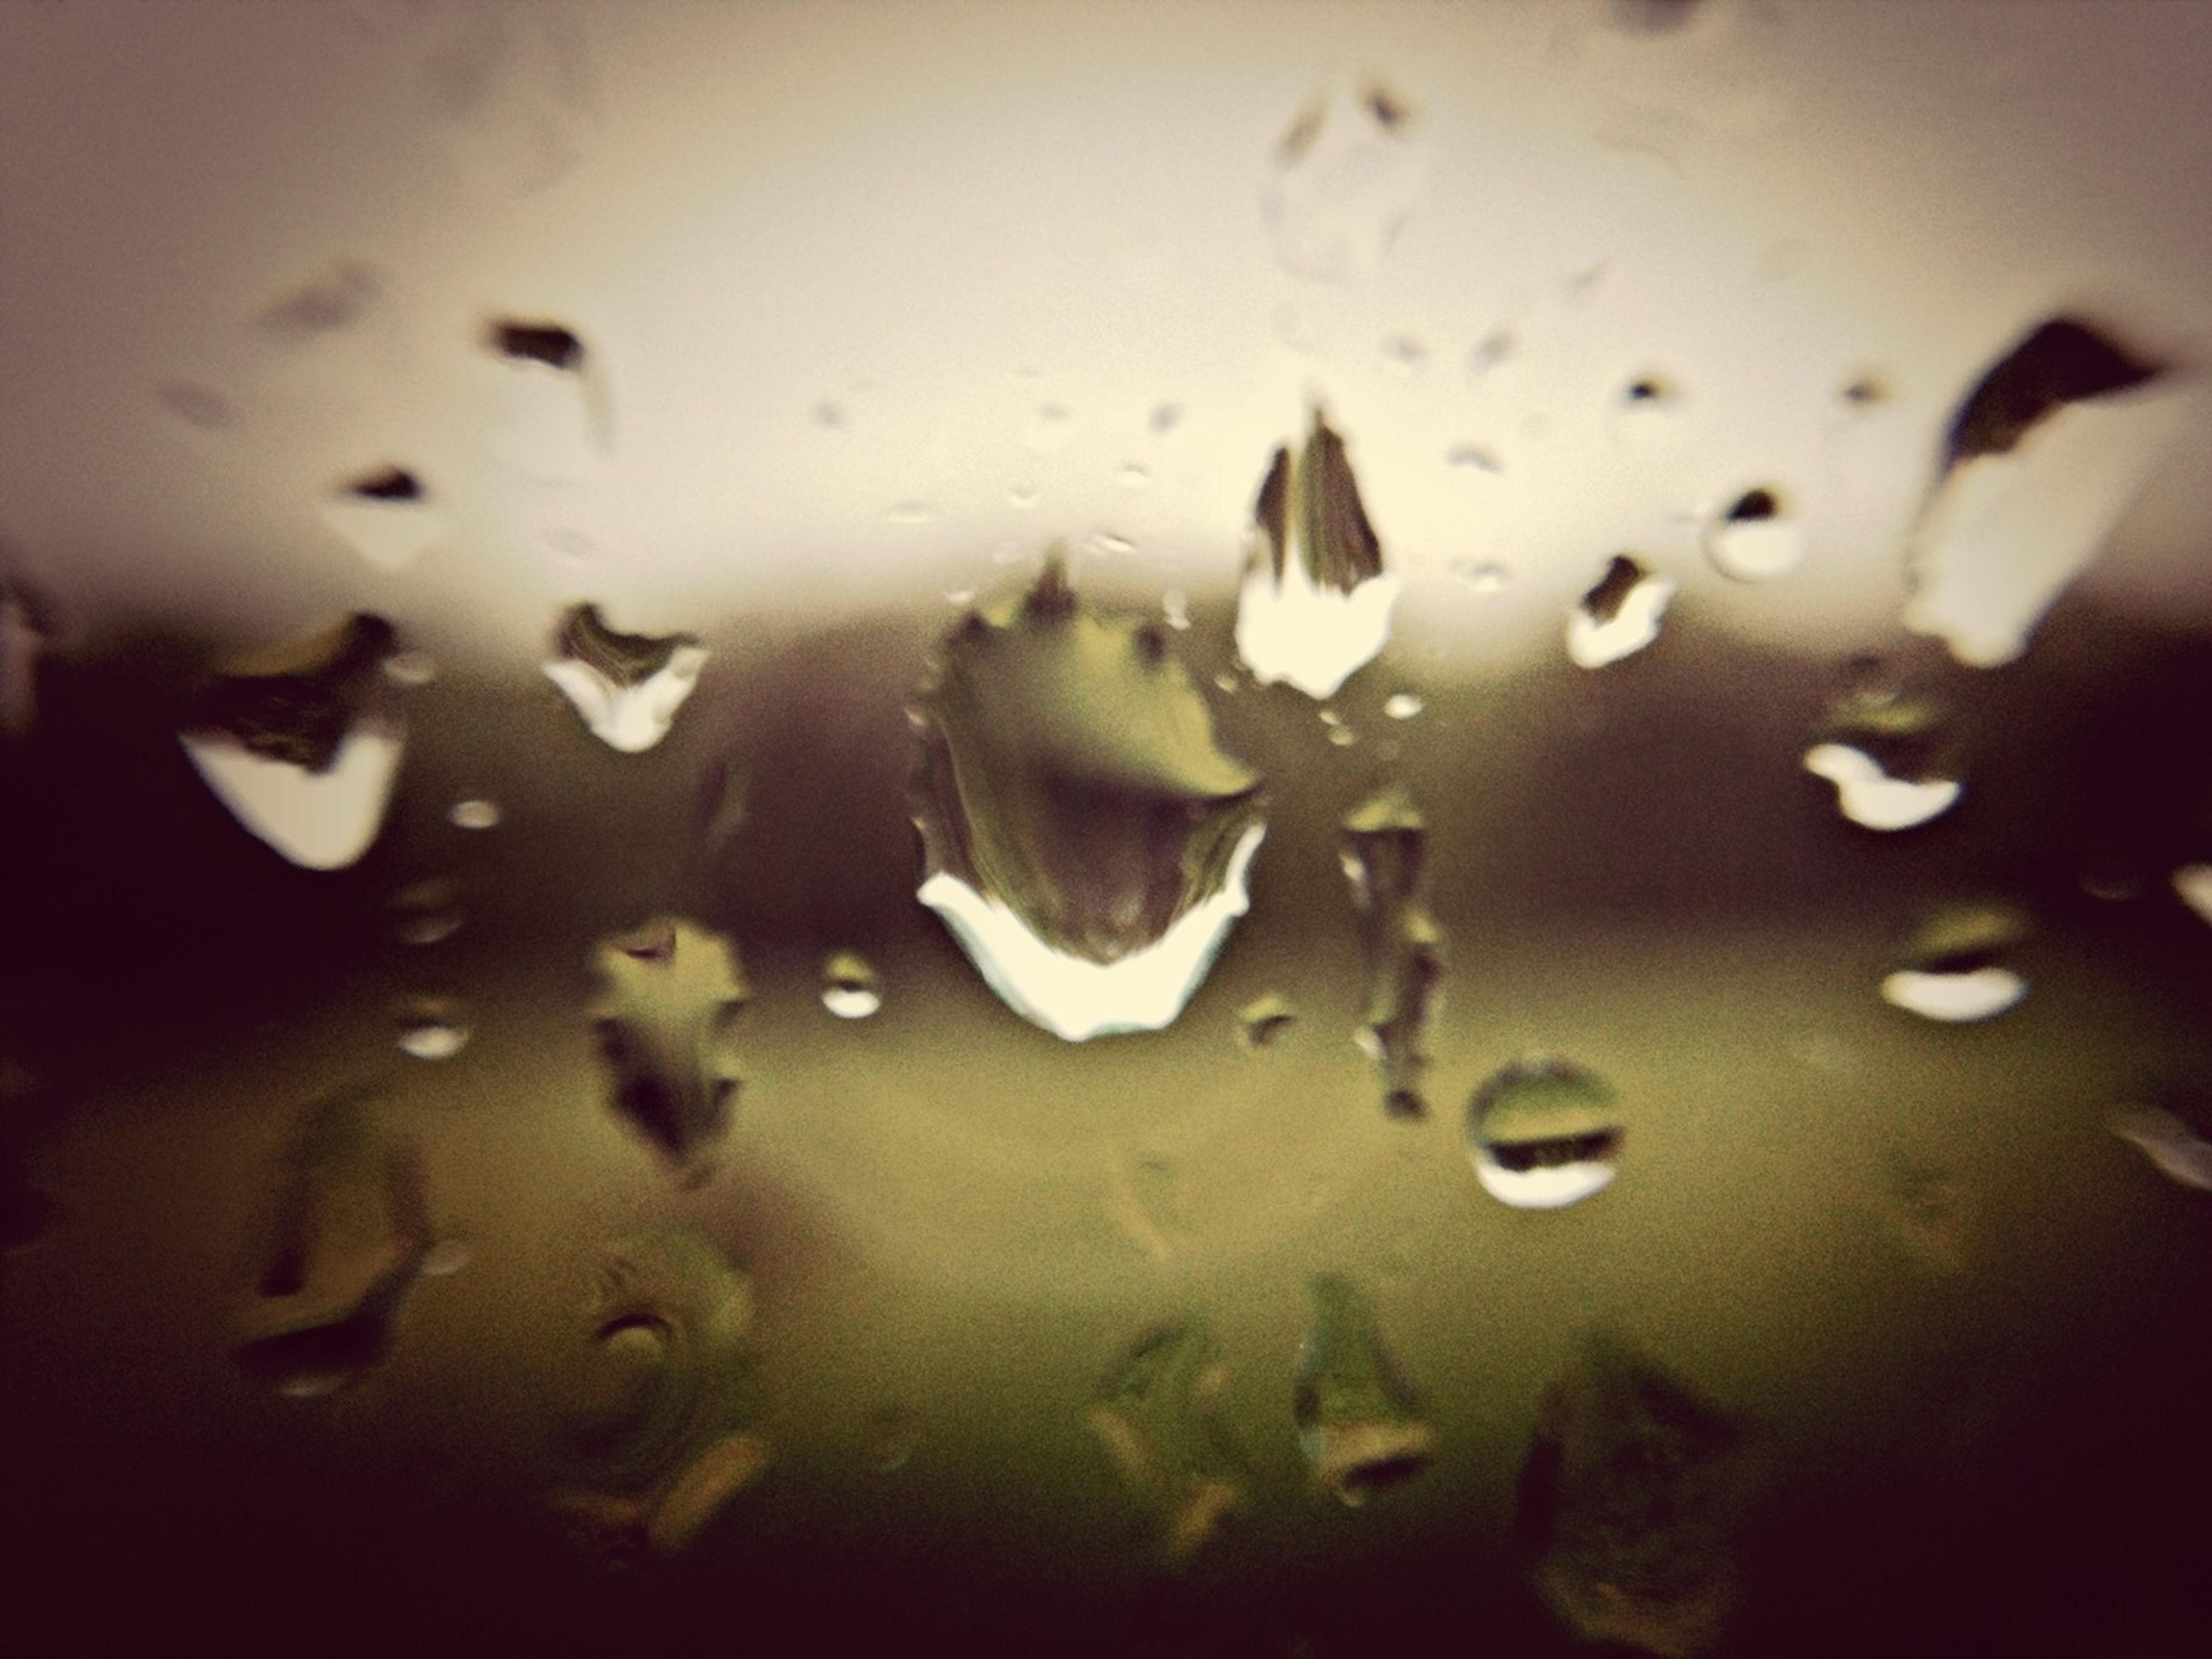 water, wet, drop, indoors, rain, full frame, backgrounds, window, transparent, close-up, glass - material, weather, raindrop, reflection, no people, season, glass, nature, selective focus, high angle view